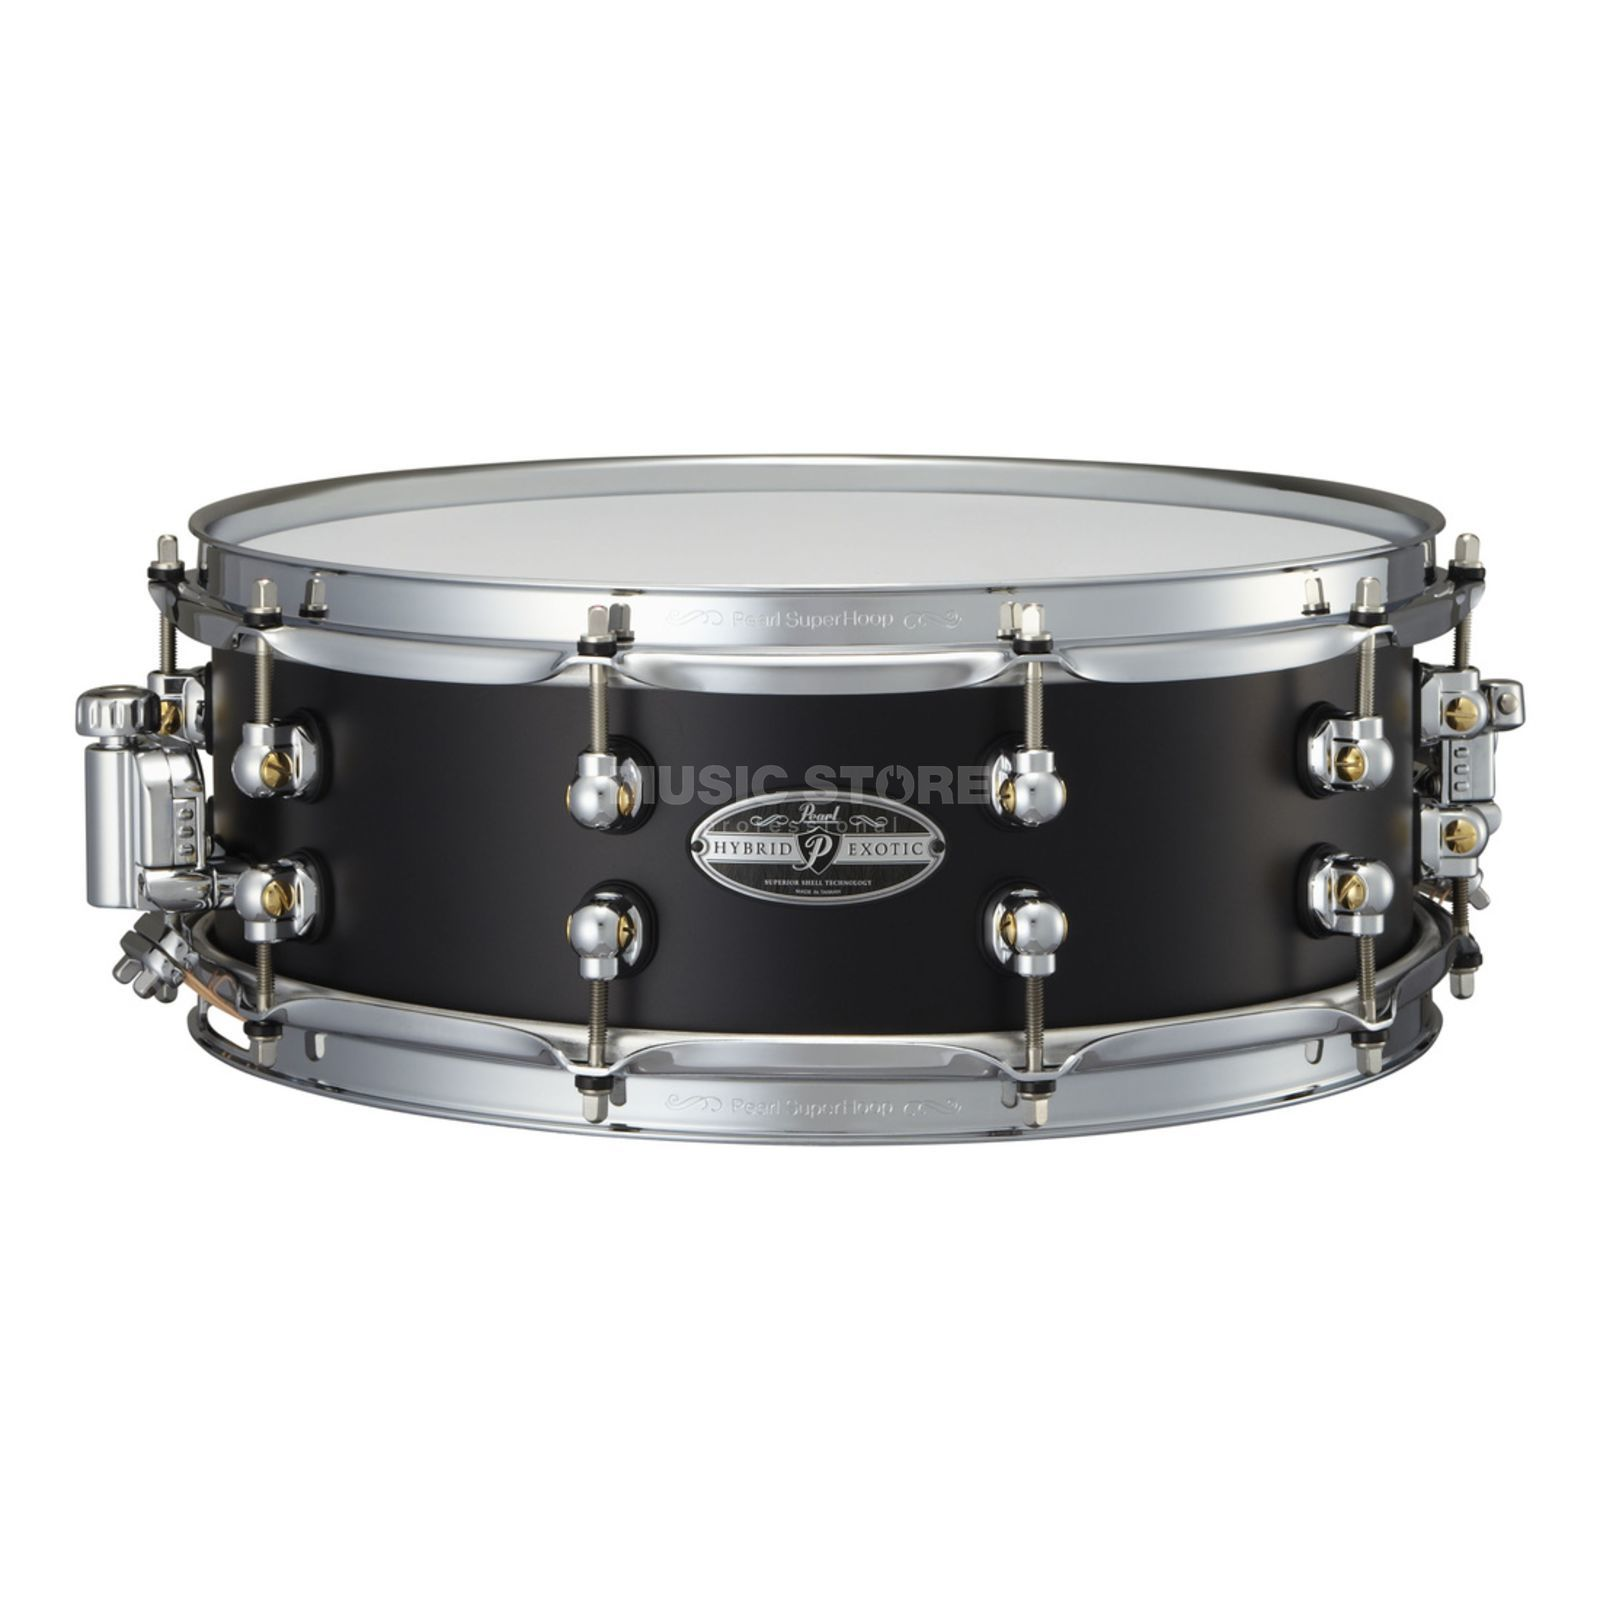 "Pearl Hybrid Exotic Snare 14""x5"", HEAL-1450, Cast Aluminum Produktbillede"